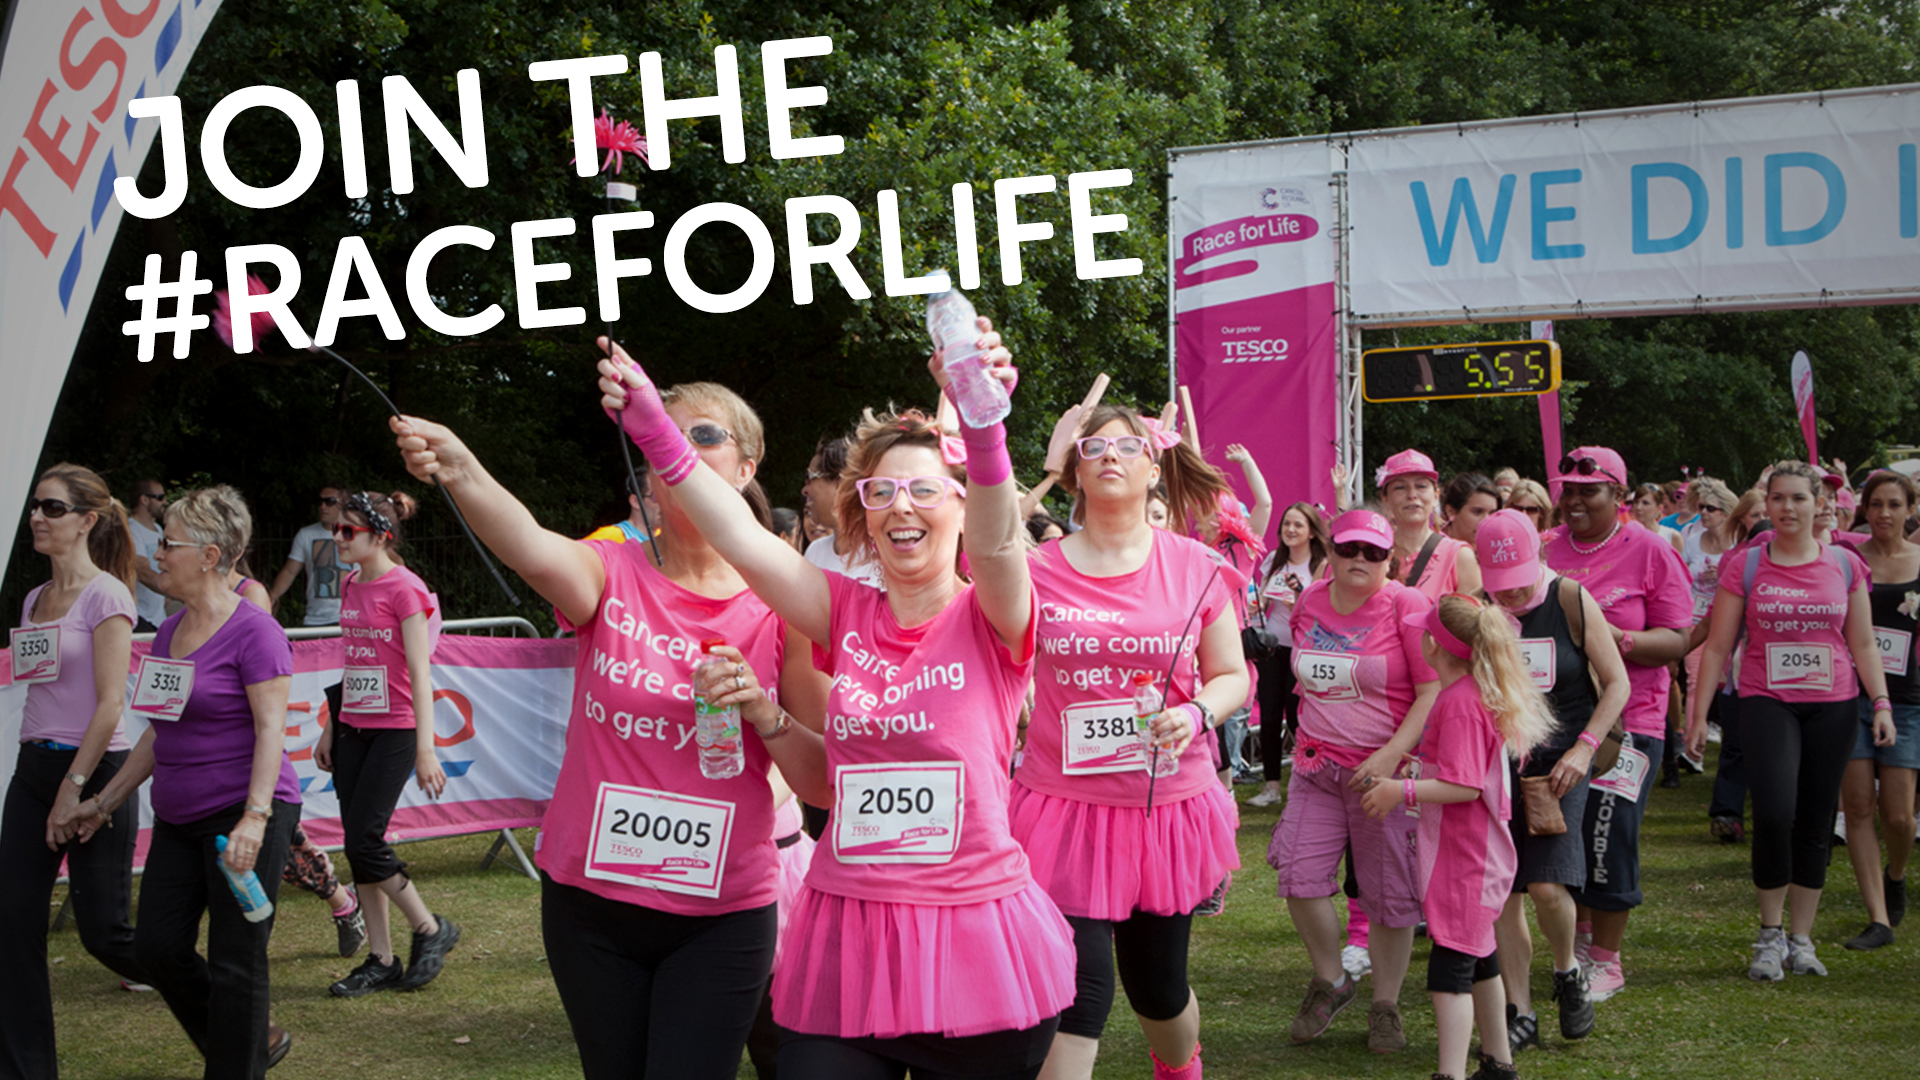 Cancer Research UK Race for Life 5k, 10k, Pretty Muddy & Pretty Muddy Kids